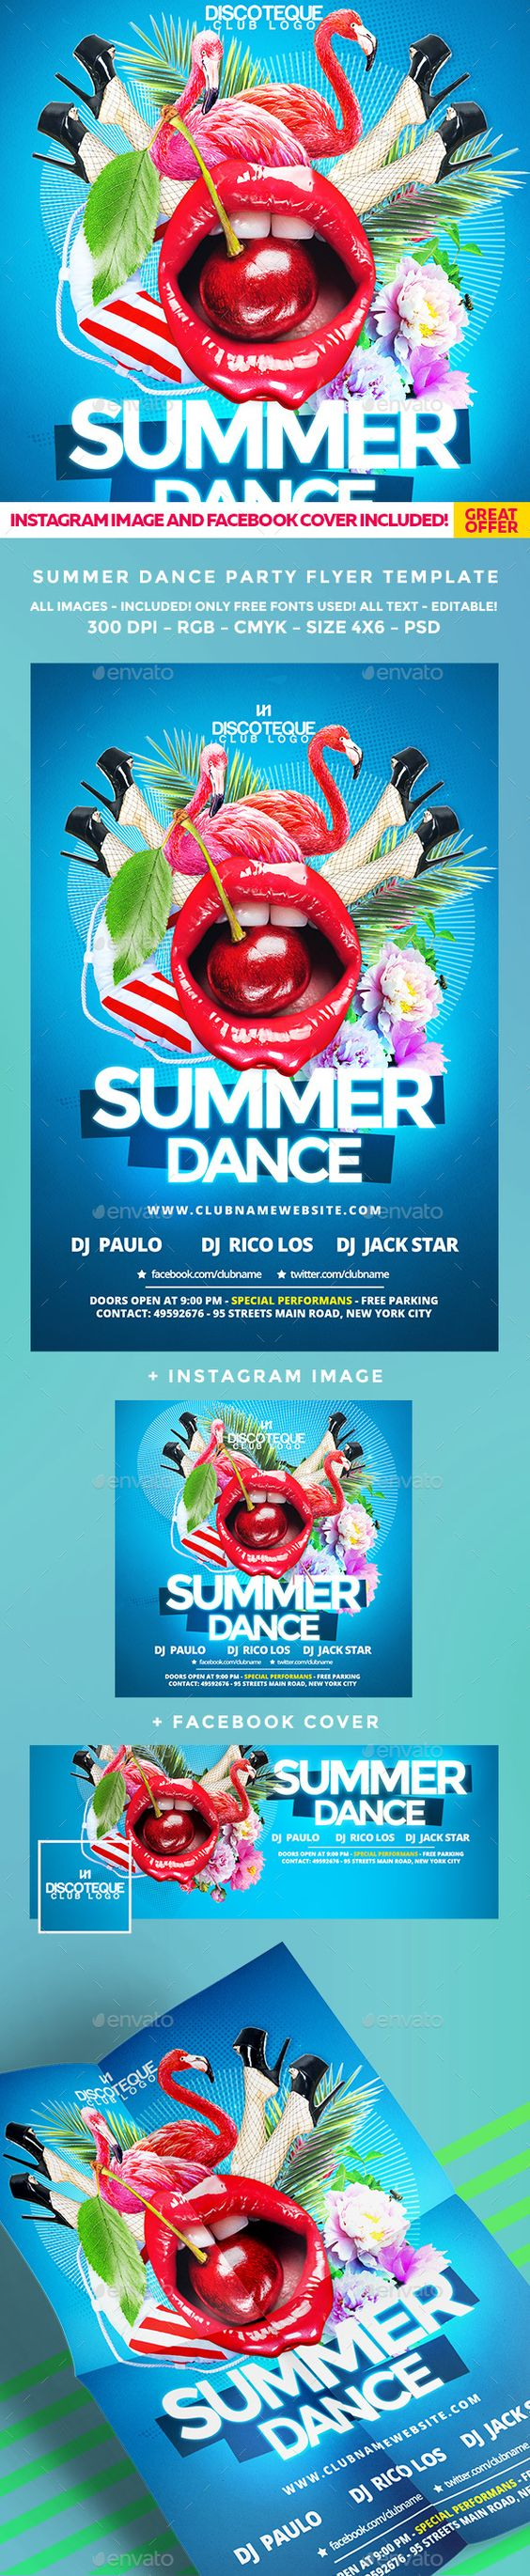 Summer Flyer #beach #beachhouse #openair #party #pool #summer #summerbash #summerbeach #summerflyer #summerholiday #summerparty